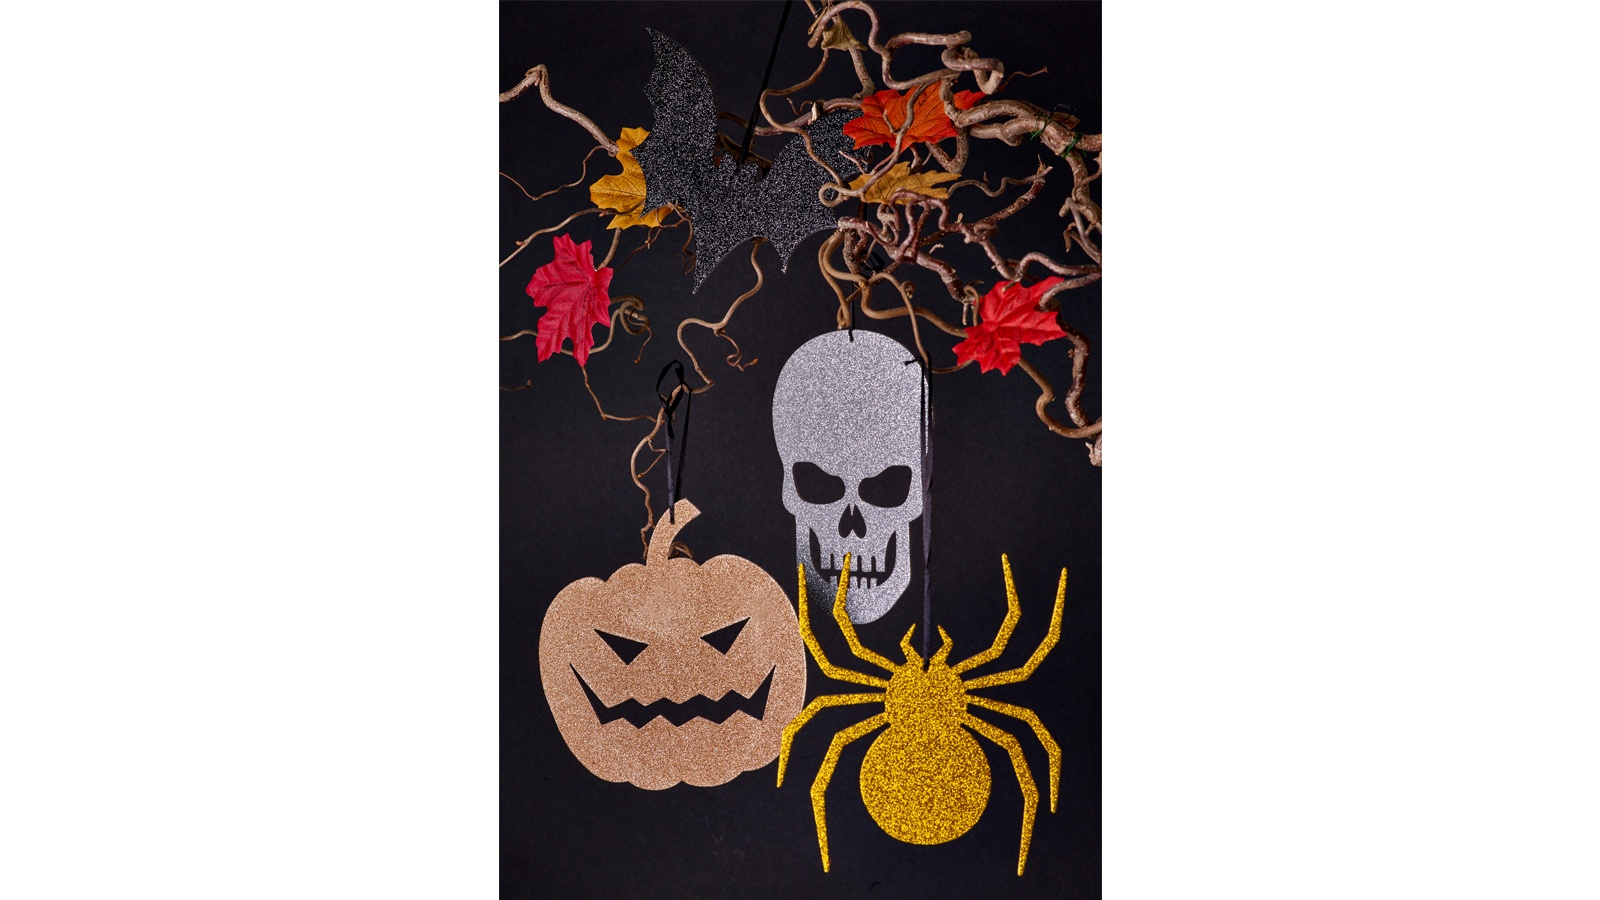 HANGING HALLOWEEN DECORATIONS RESIZE